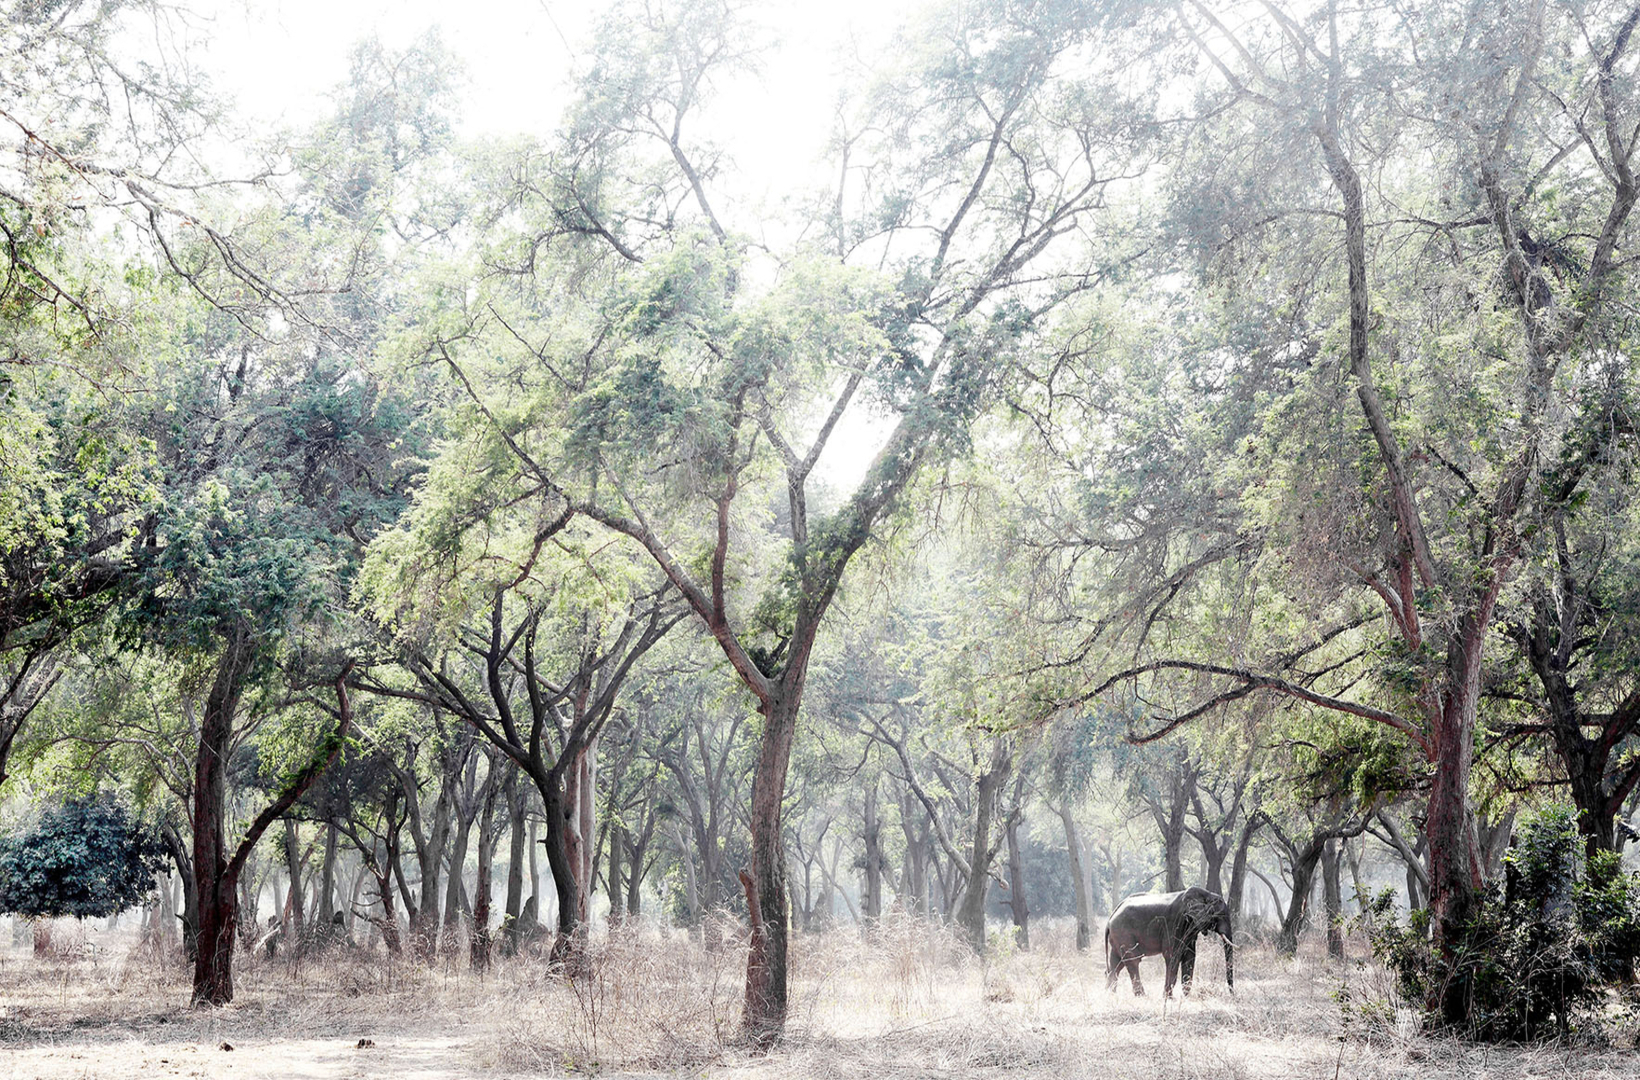 An African elephant rests in the dappled shade of Acacia at Mana Pools National Park in Zimbabwe